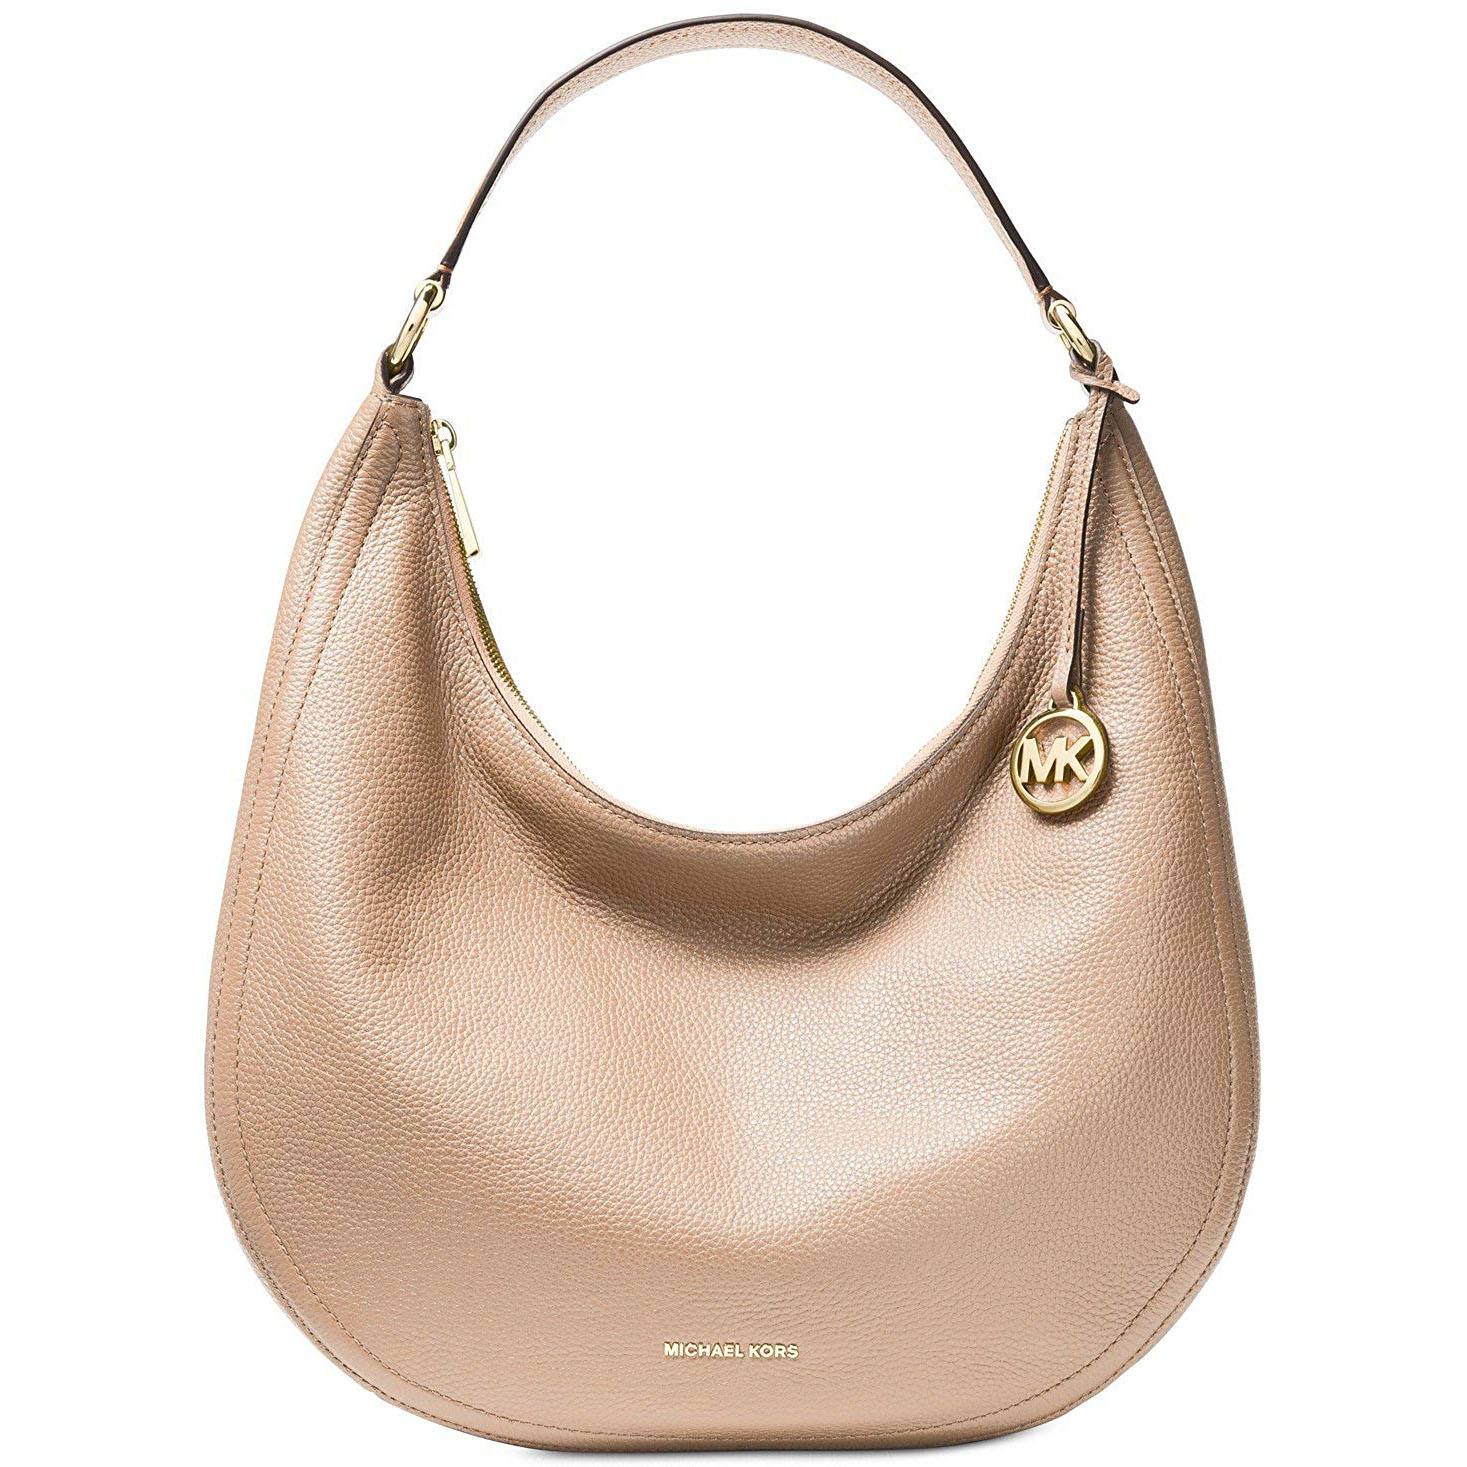 Michael Kors Lydia Large Leather Hobo Bag Oyster Beige Nude # 38S8GLOH7L